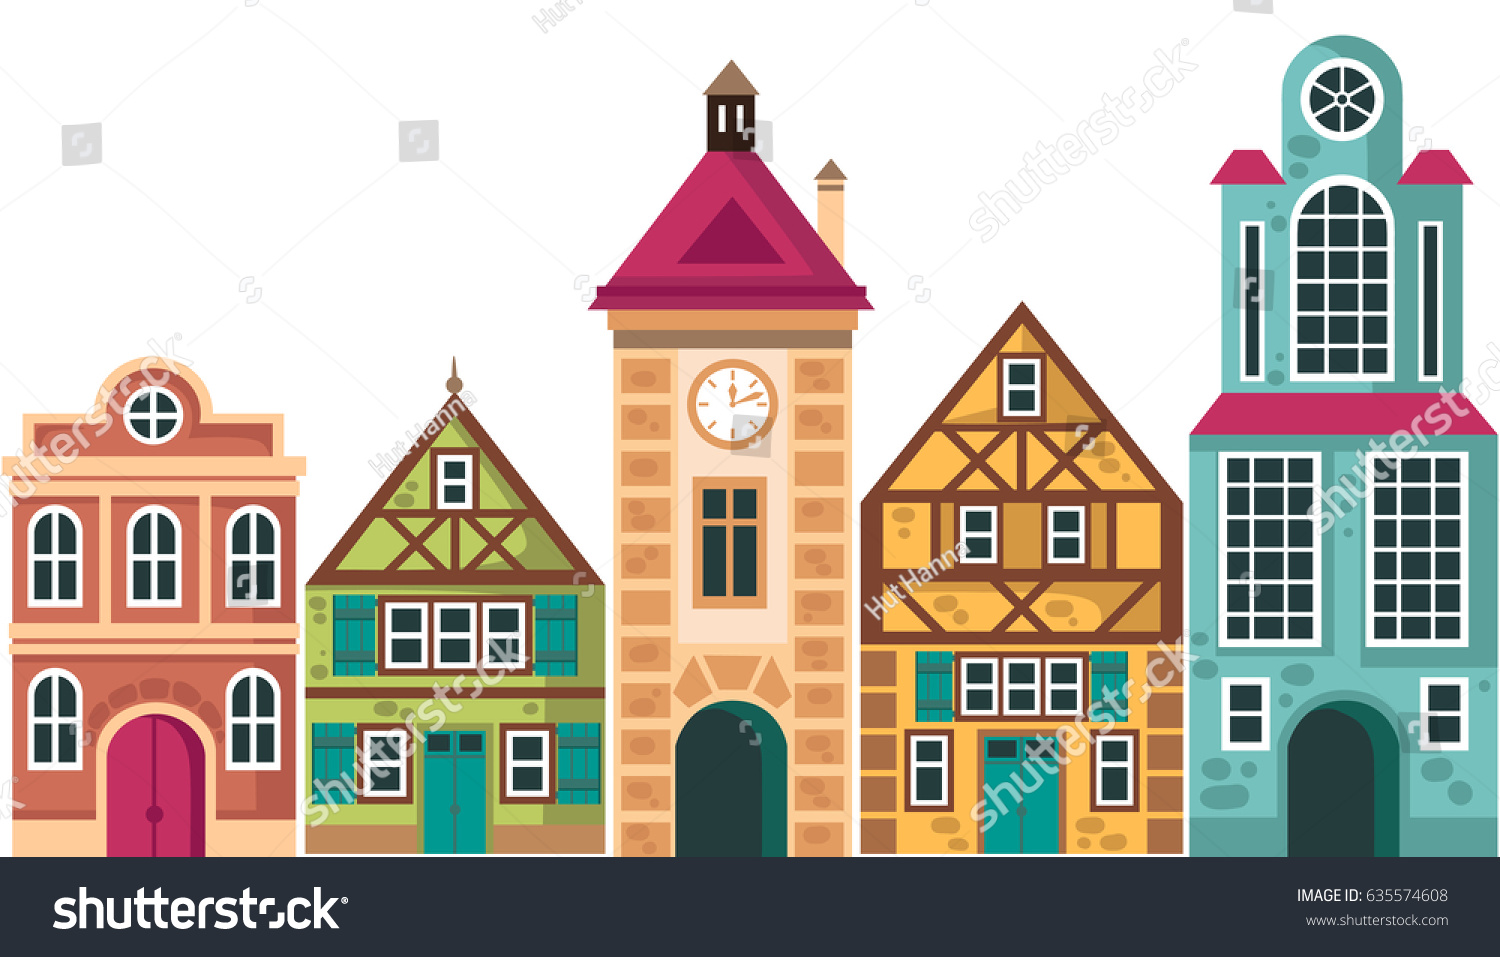 House design cartoon - Row Of Different Houses Houses Cottage Buildings Vector Cartoon Illustration Exterior Design